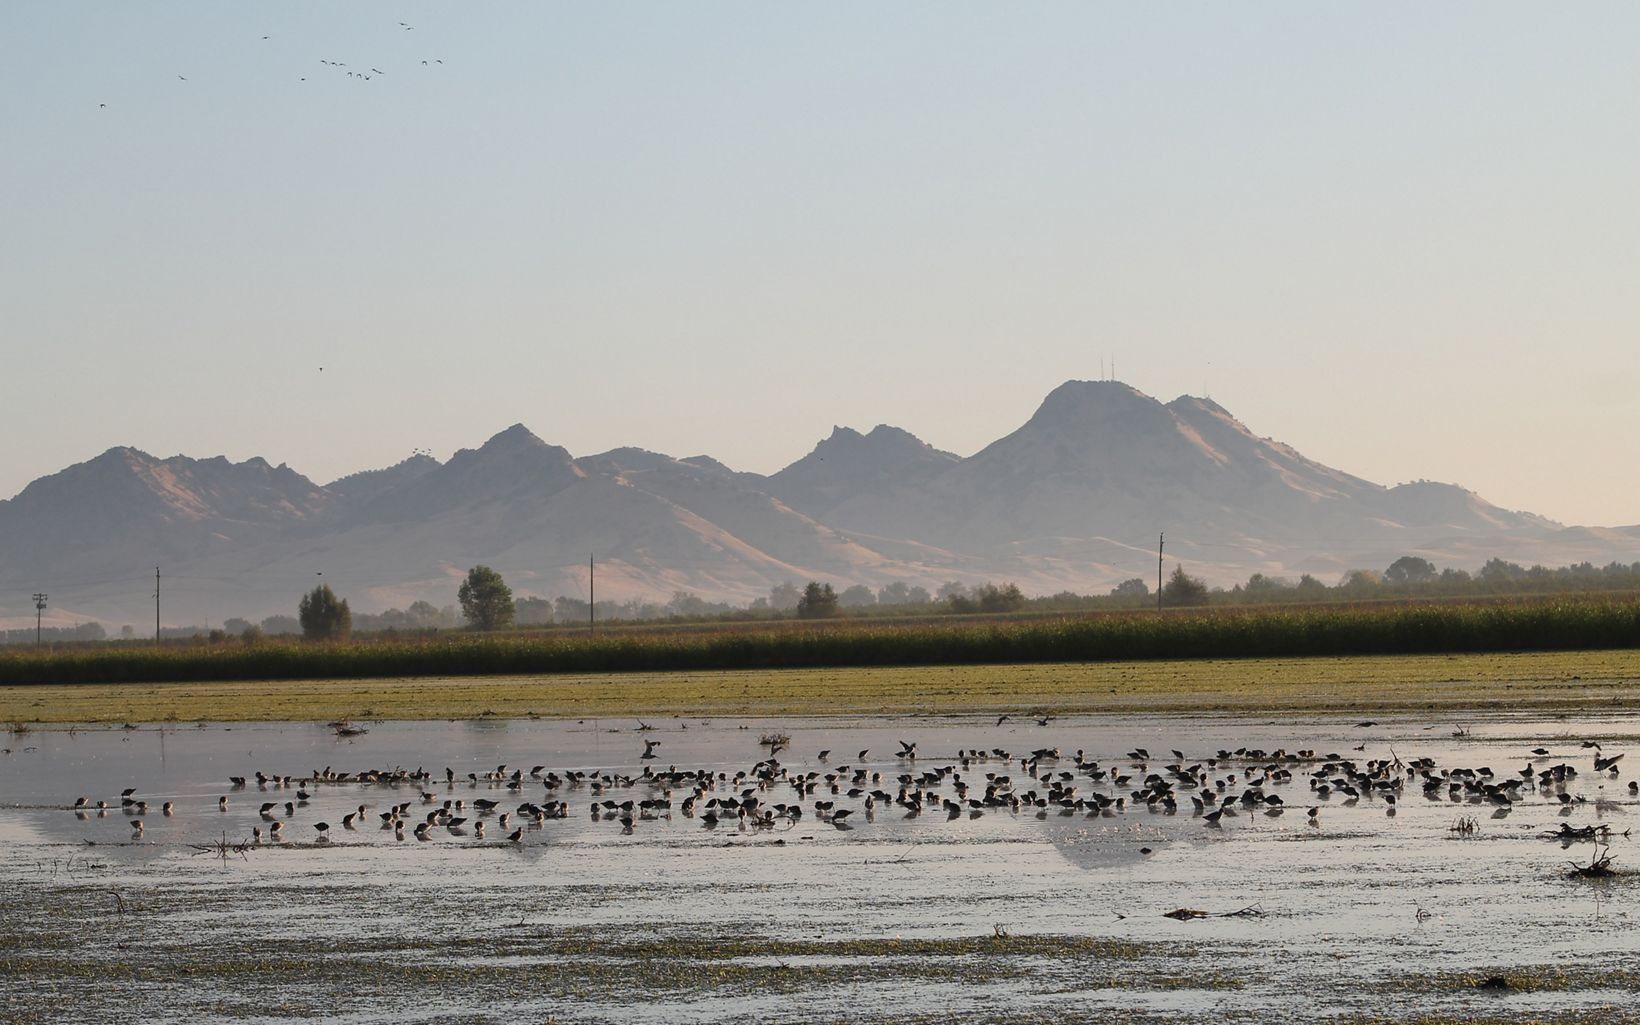 As part of the multi-benefit recharge project in CA's central valley, carefully flooding fields can provide migratory birds food and habitat while helping recharge groundwater